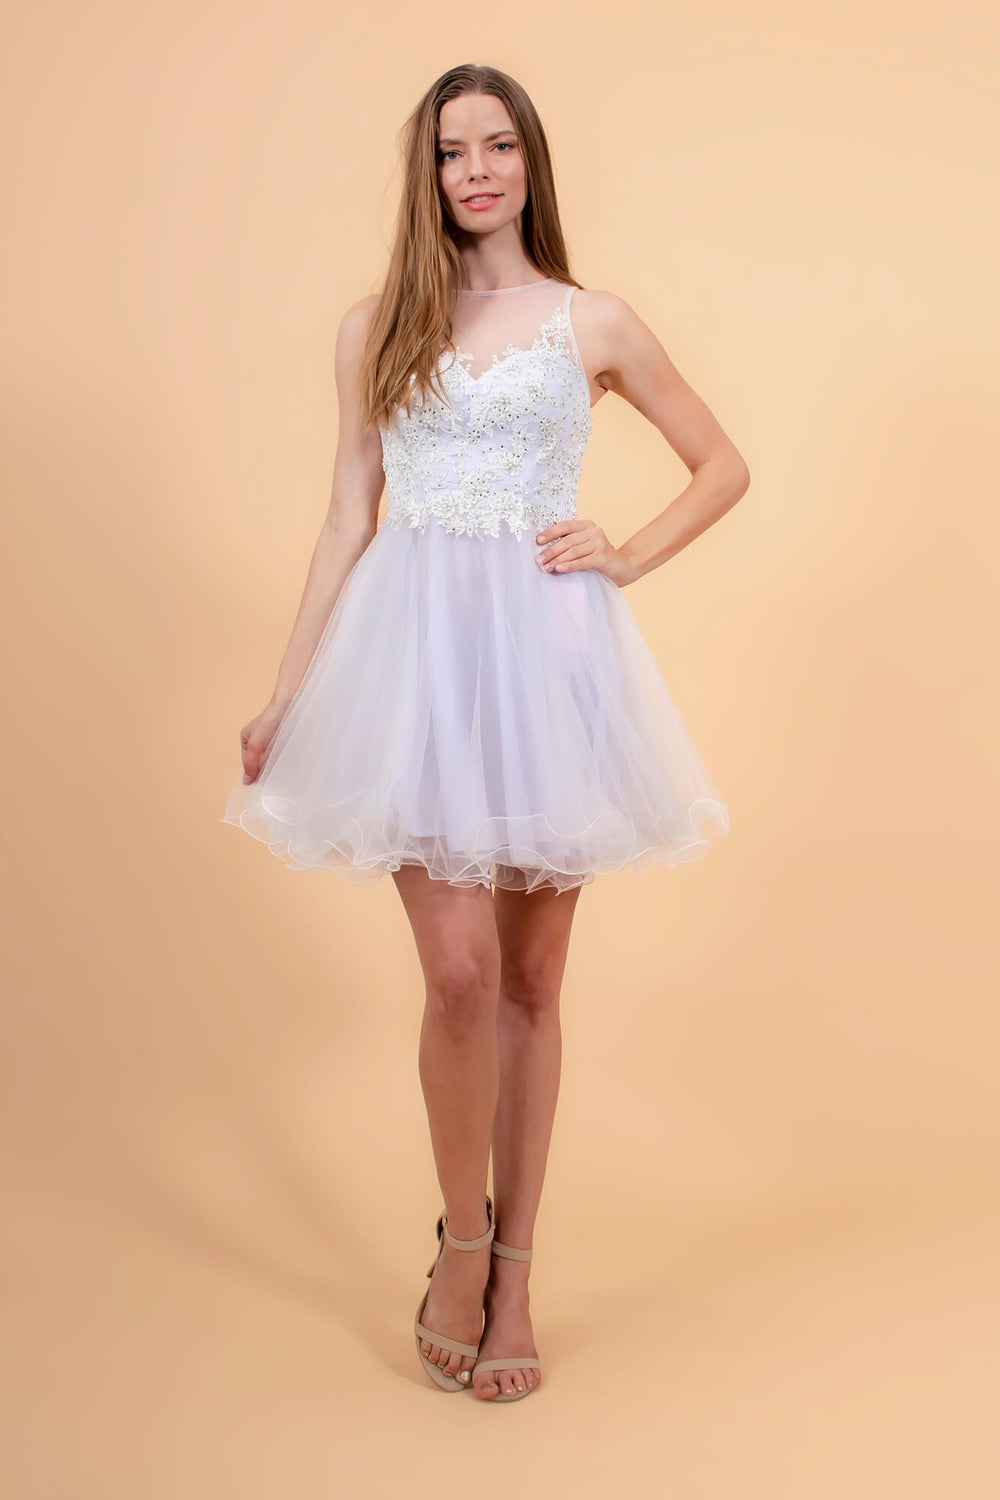 Short Prom Dress Formal Homecoming - The Dress Outlet White